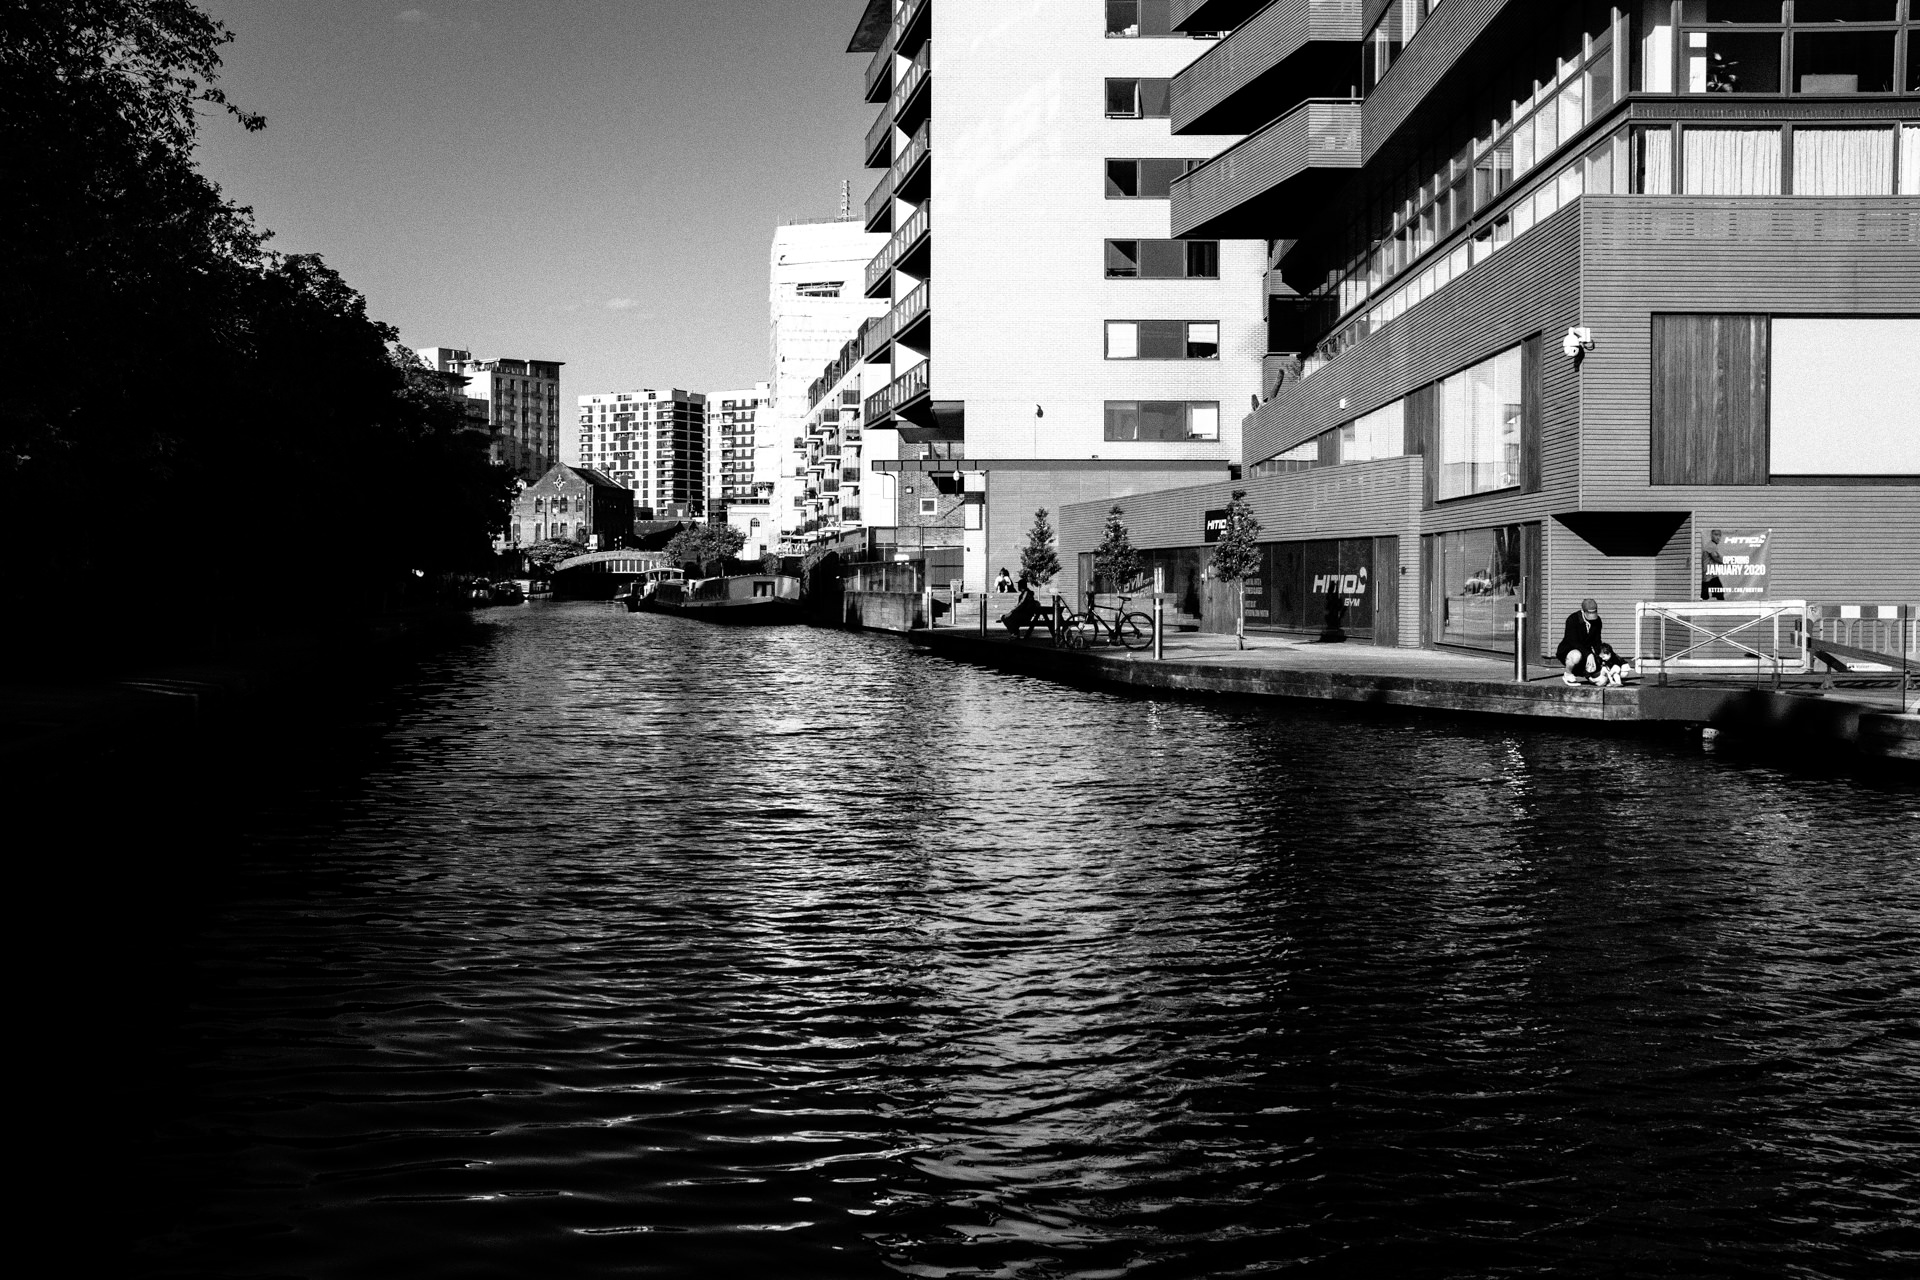 black and white picture of regents canal london